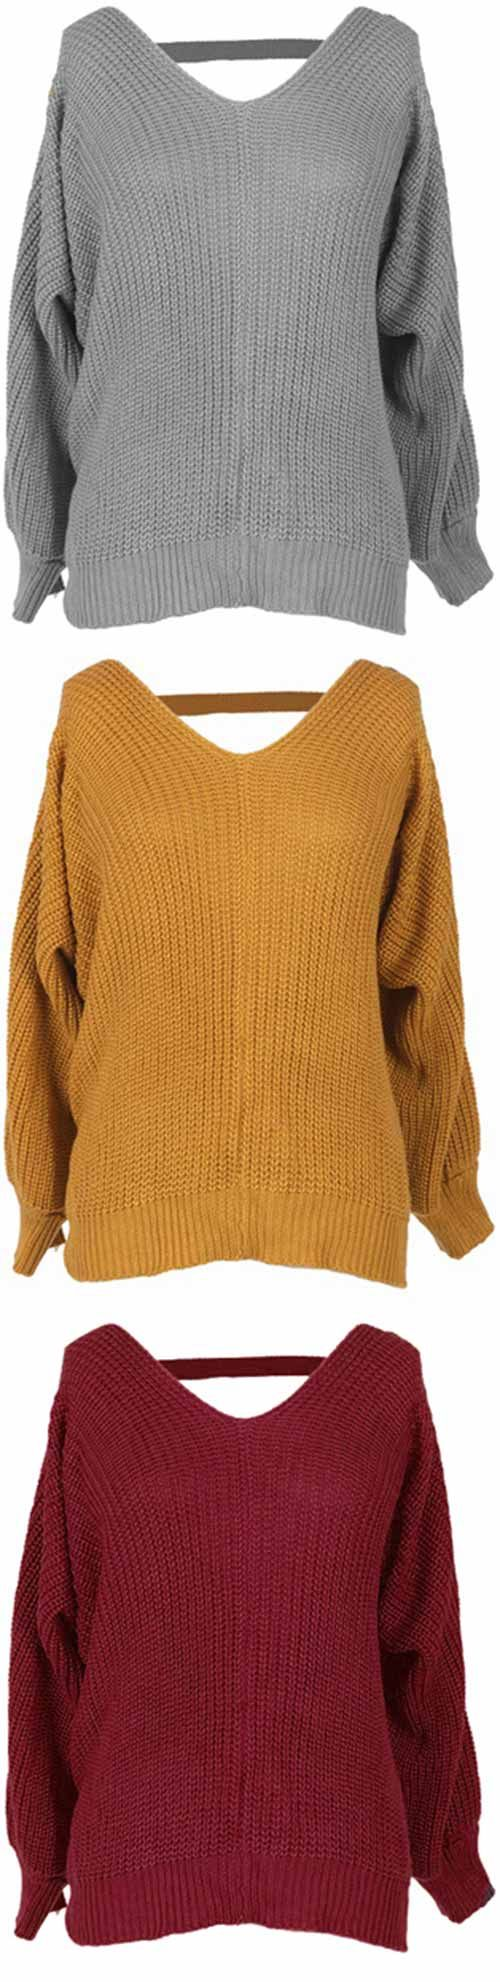 We have found the perfect slouchy sweater! Own it, $23.99! Any day you can wear it with lovely skirt and still be adorable in public is a great day!